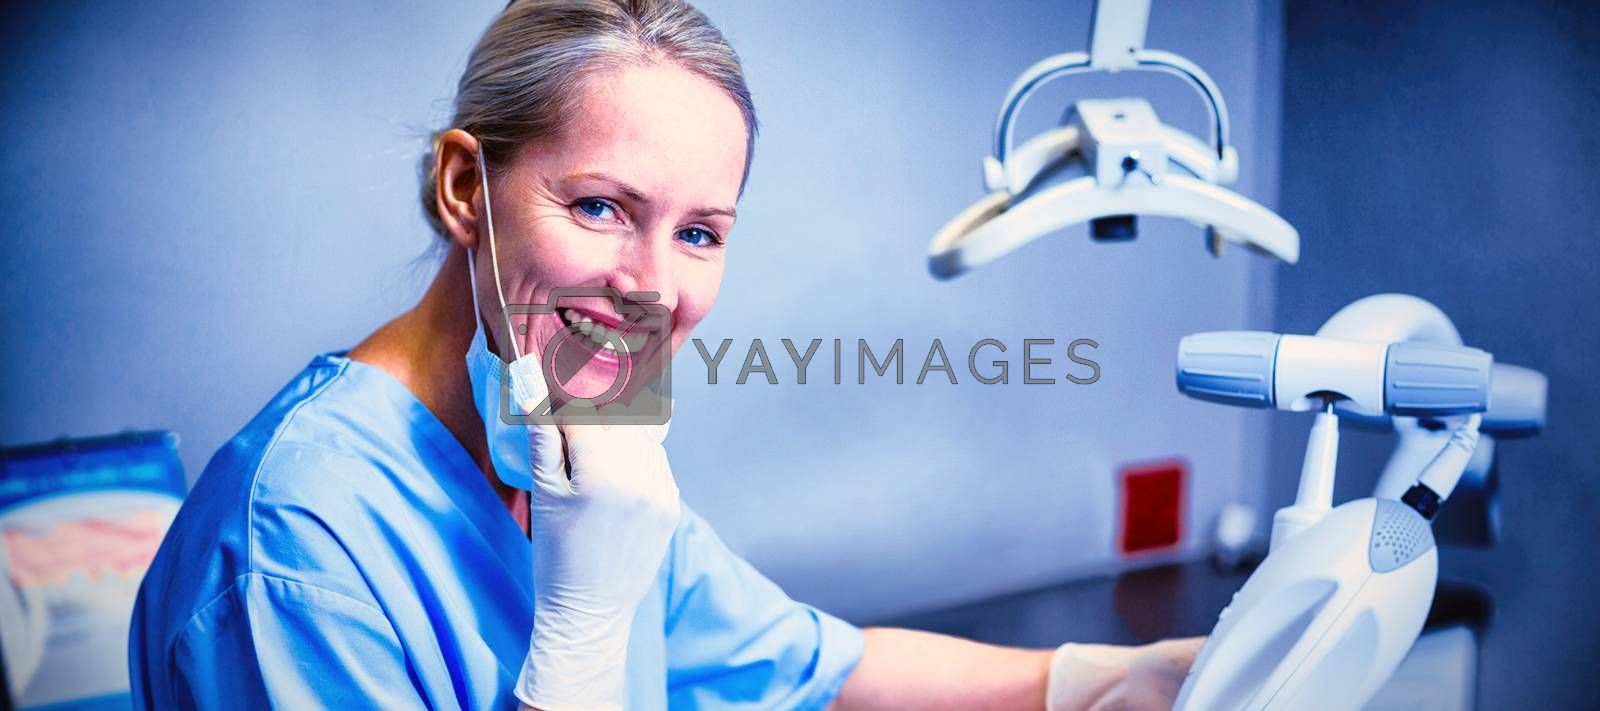 Portrait of dental assistant examining young patient mouth in clinic